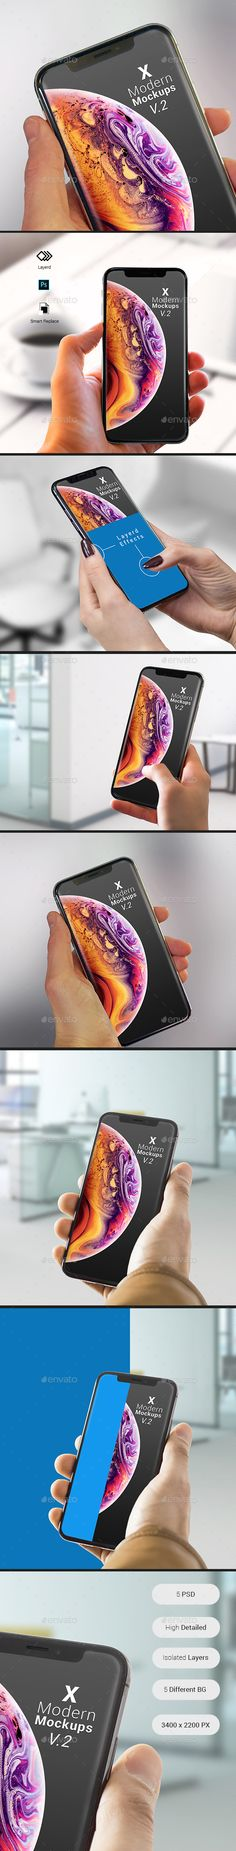 Buy X Modern Mock-ups - Apps Ui Showcase by Media_Variety on GraphicRiver. Premium quality Mobile iphone x in hands App Mock-Up smartphones Photoshop PSD file help you to make better presenta. Smartphone, Good Presentation, Photoshop, Header Image, Free Day, Fitness Gifts, Screen Replacement, Showcase Design, Iphone